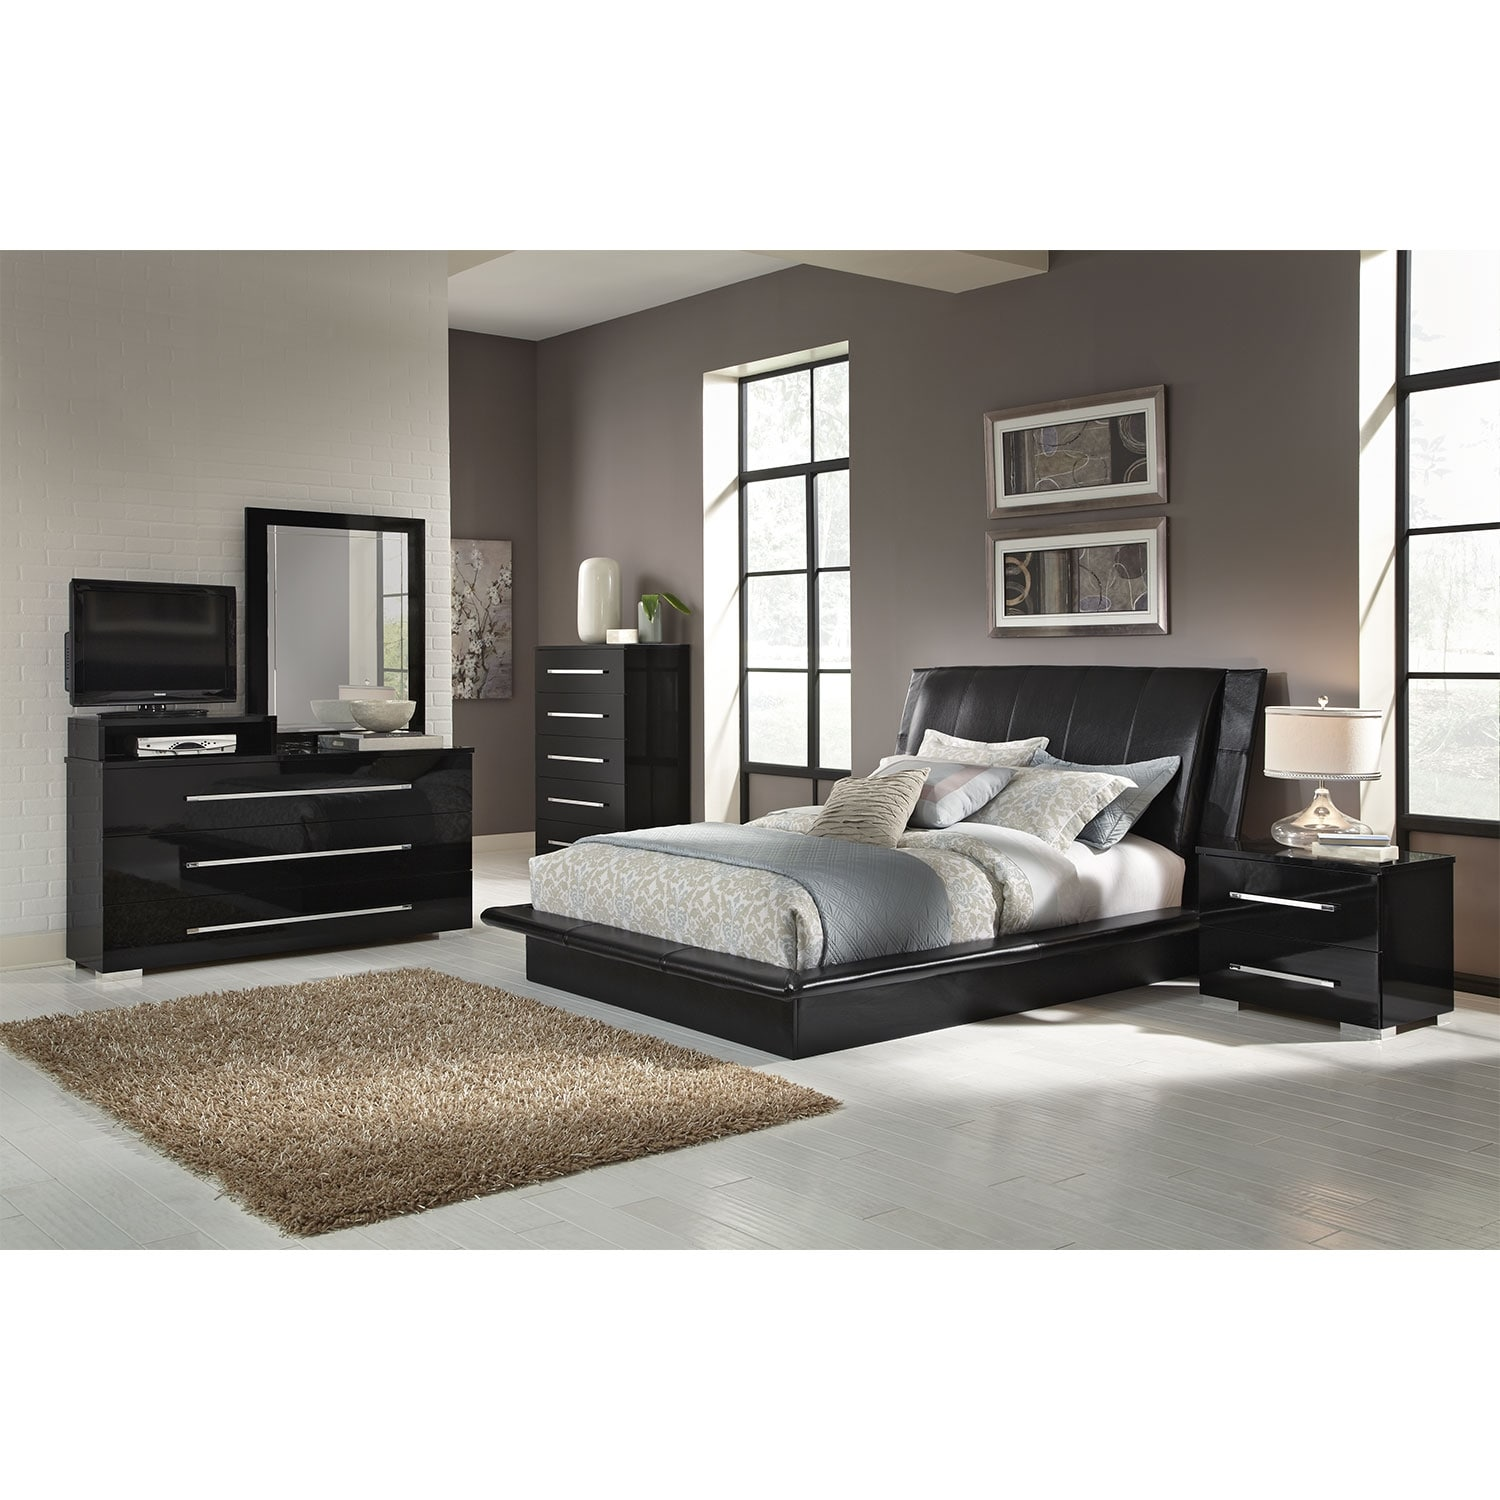 dimora bedroom set dimora 7 upholstered bedroom set with media 11428